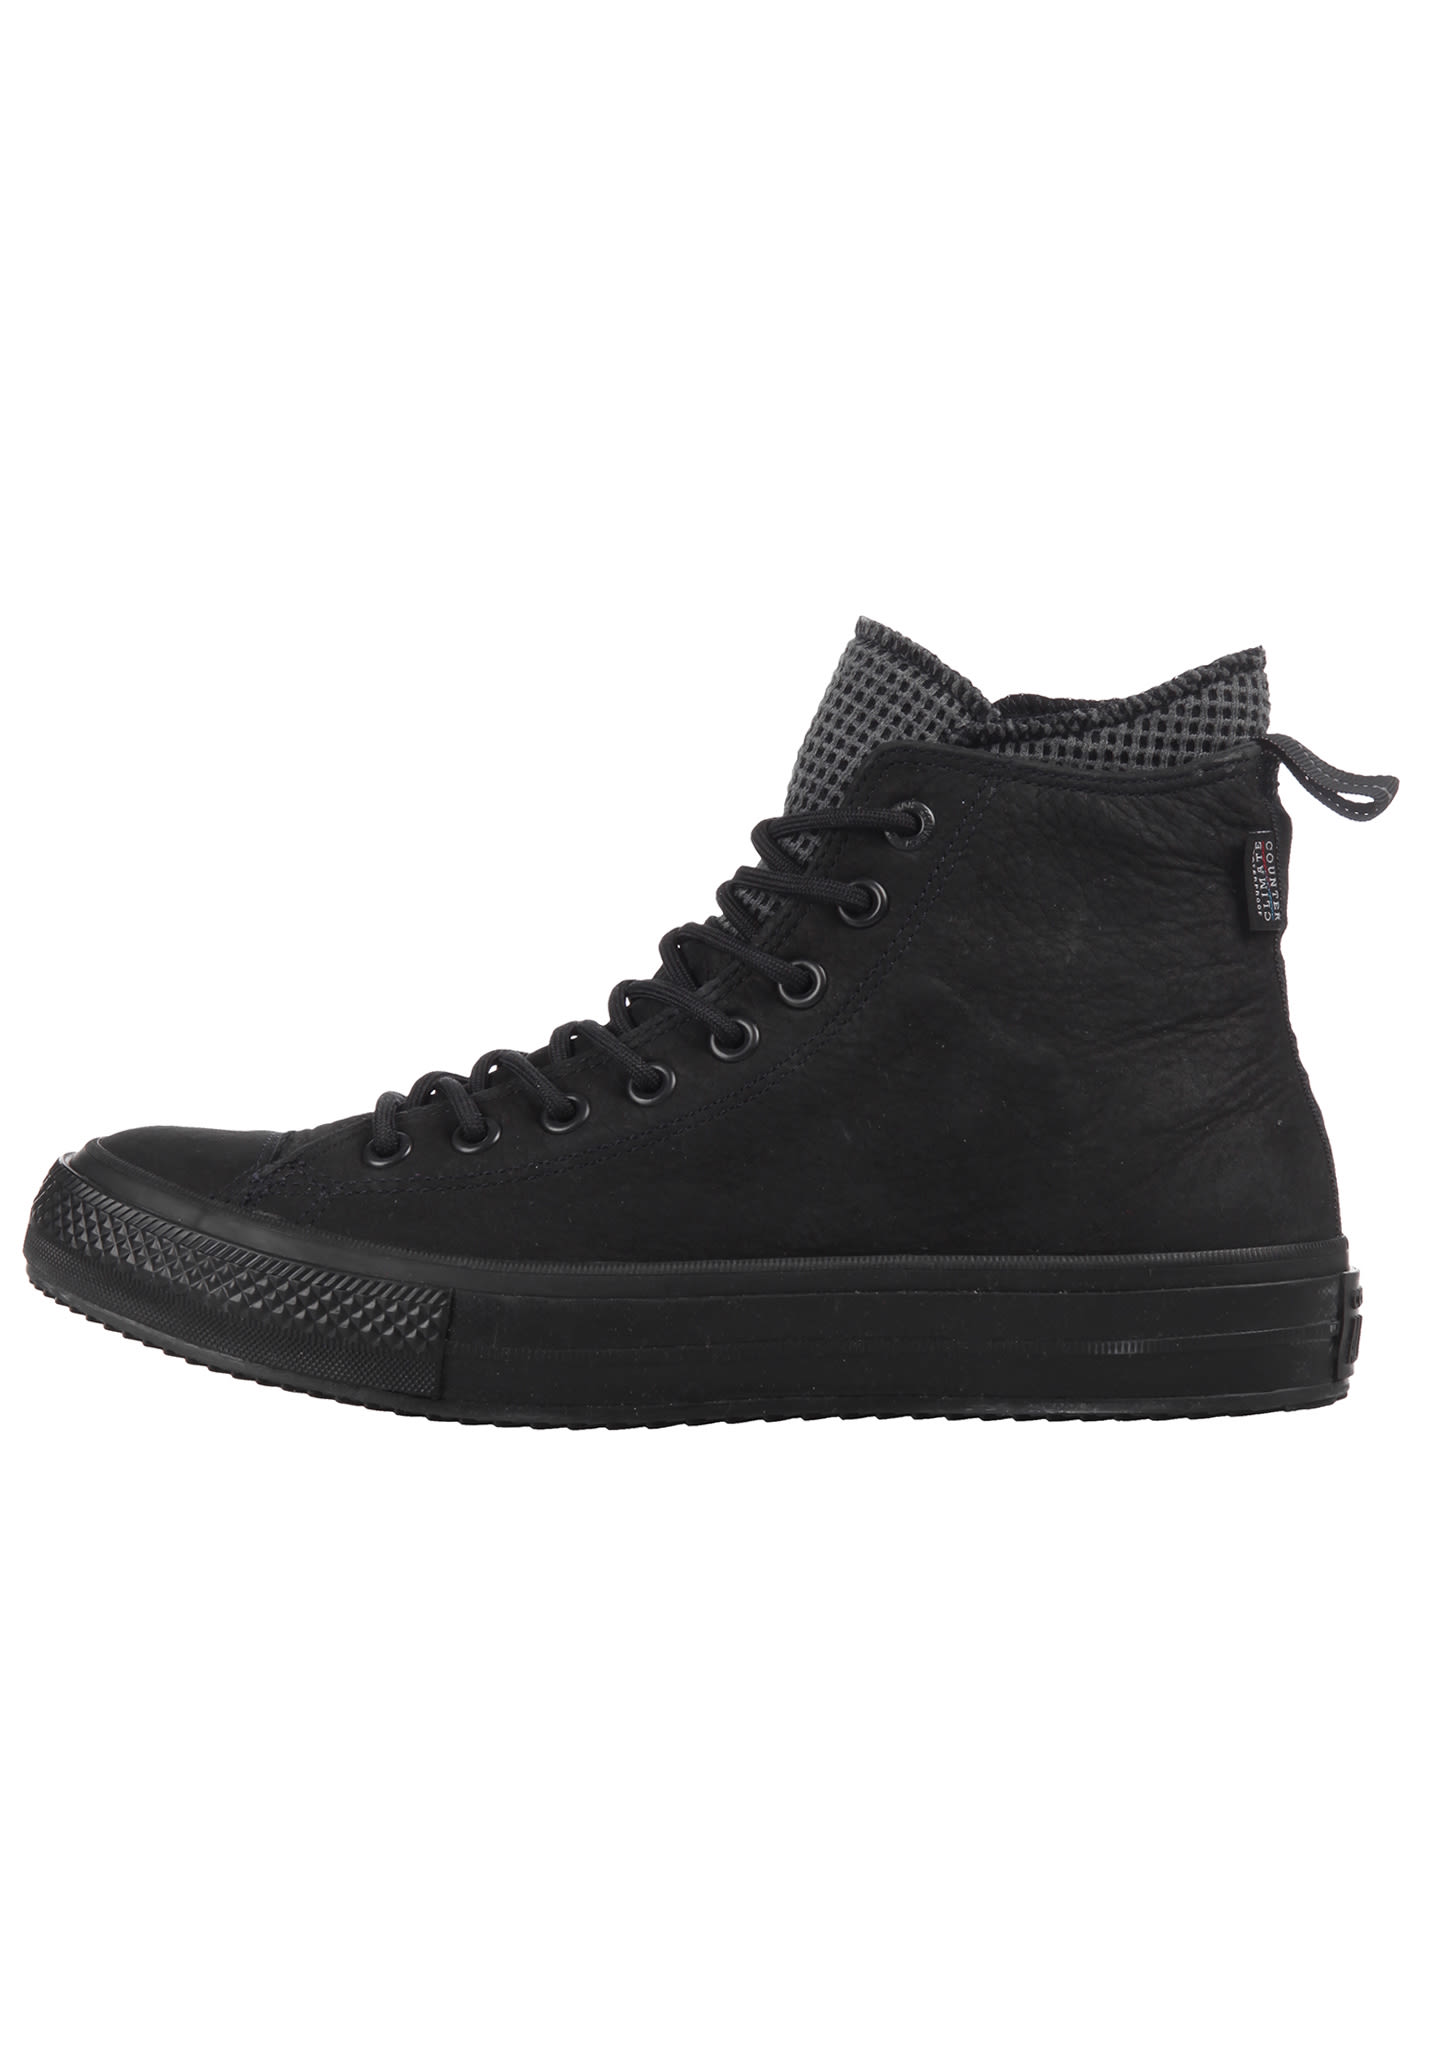 16f612dc7302 Converse Chuck Taylor All Star WP Hi - Sneakers for Men - Black - Planet  Sports